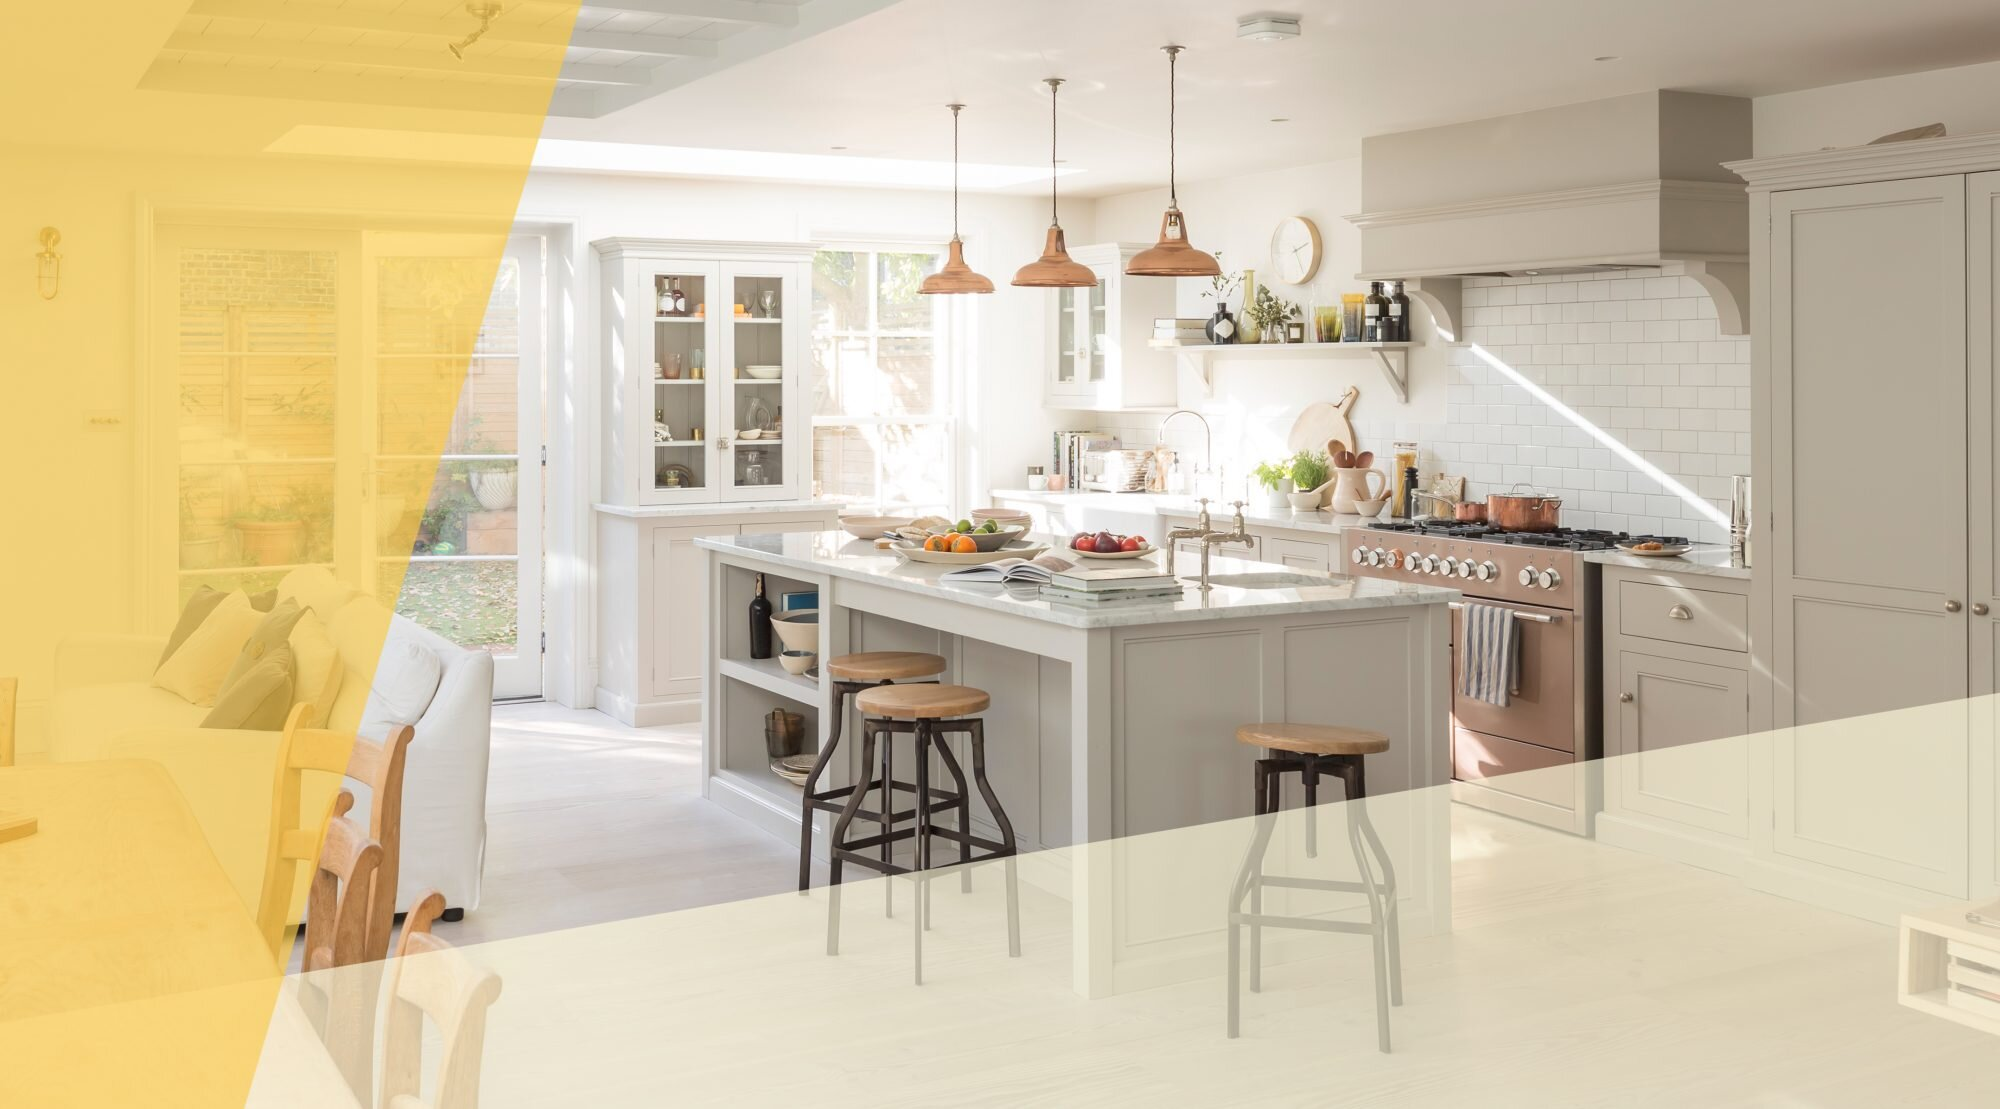 7 Timeless Kitchen Trends That Will Never Go Out Of Style Real Simple